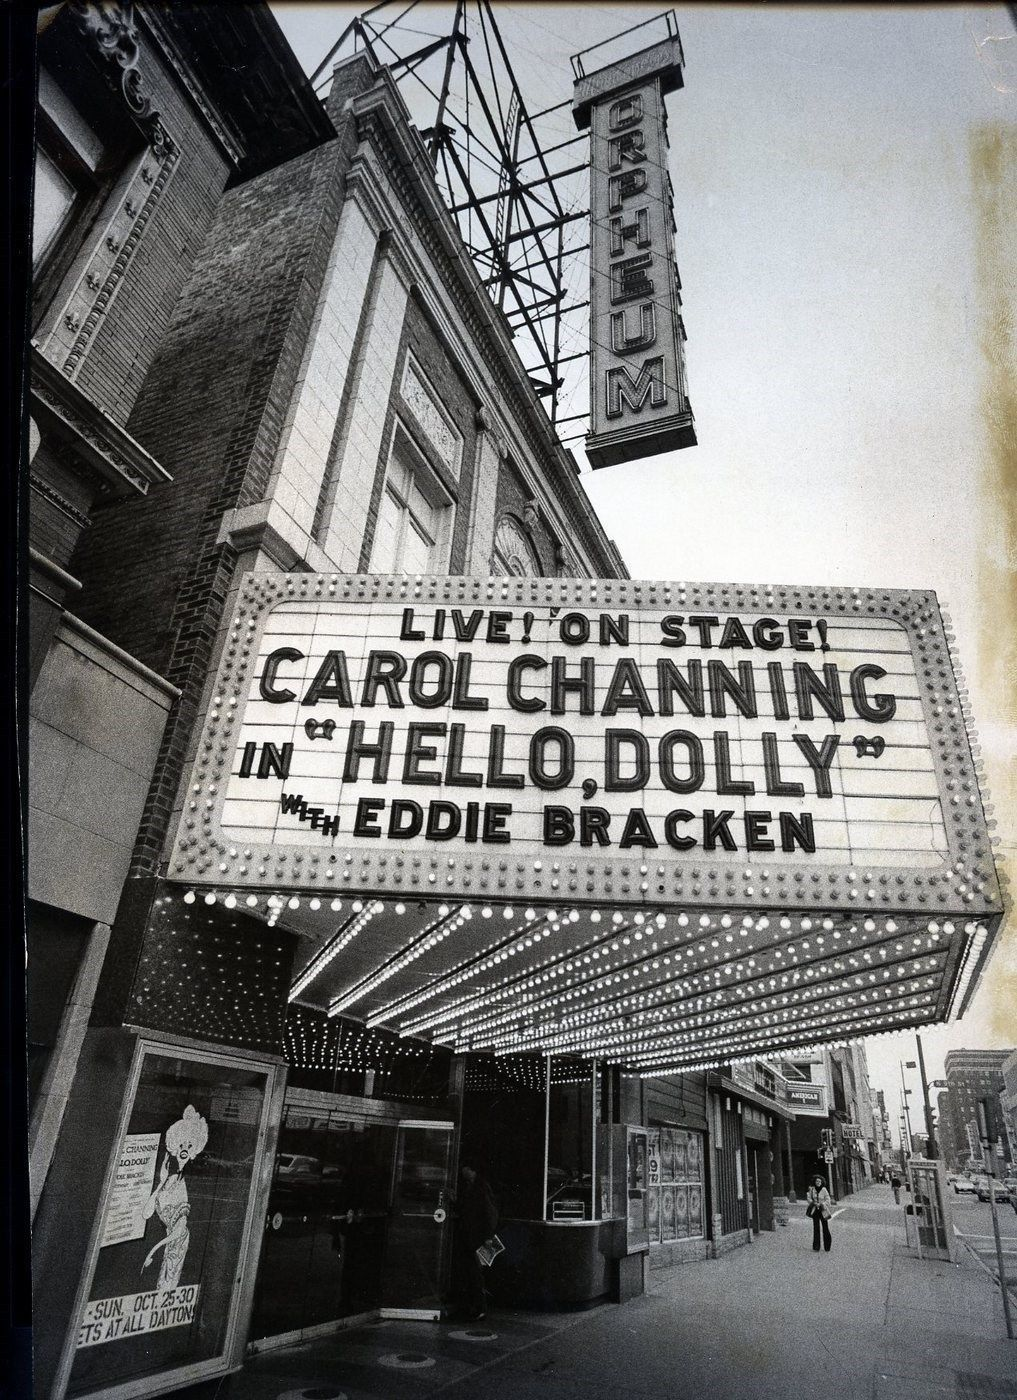 Live On Stage Carol Channing In Hello Dolly With Eddie Bracken Carol Channing Hello Dolly Orpheum Theatre M Carol Channing Theatre Poster Signed Photo